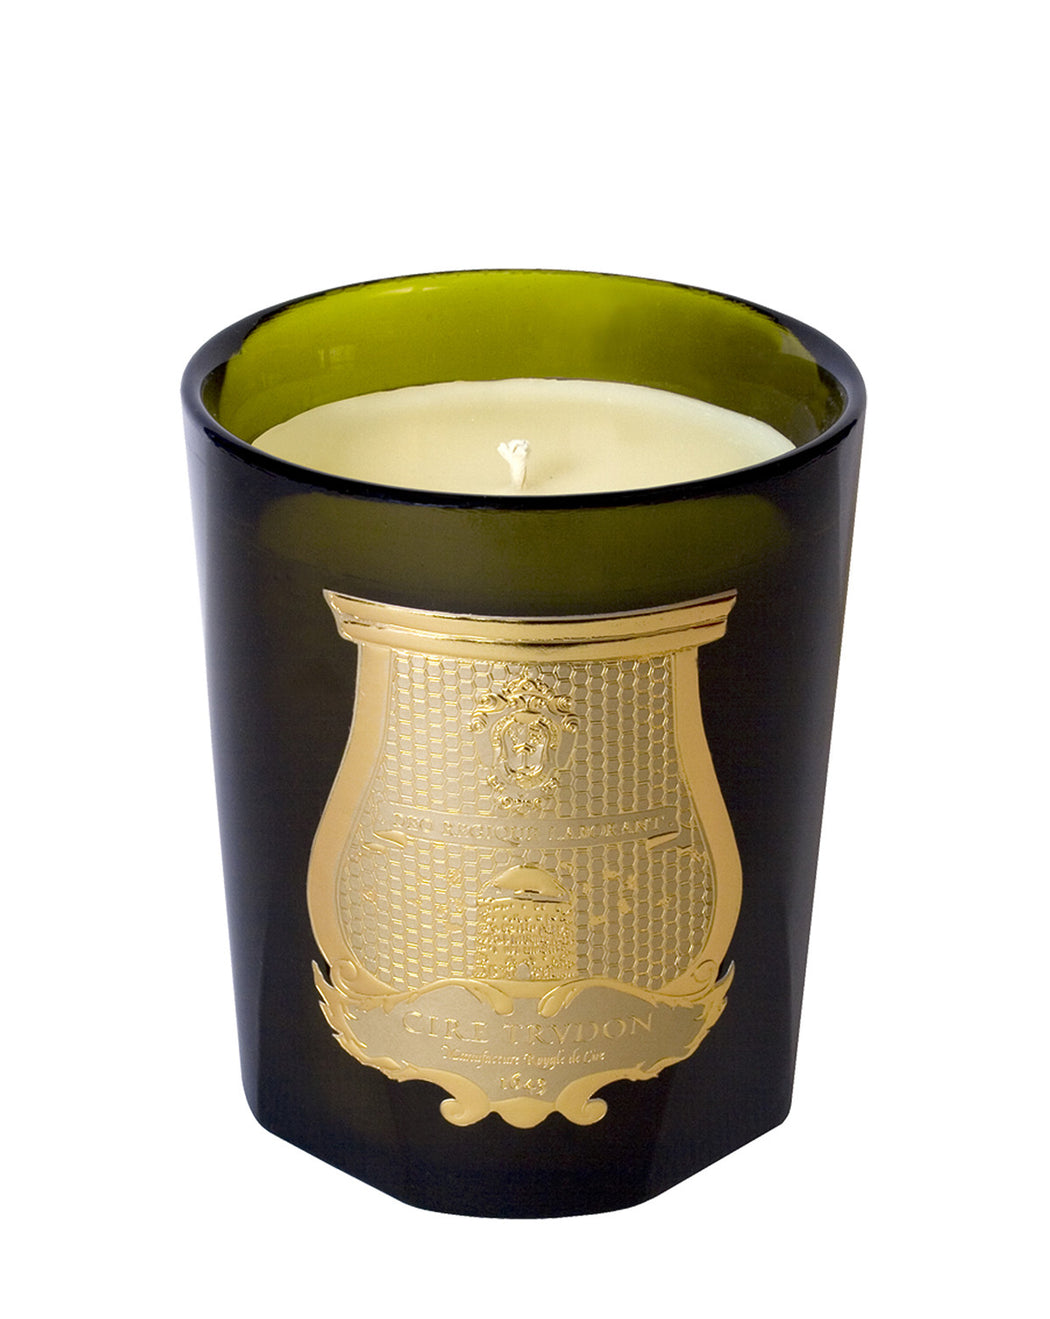 CIRE TRUDON CANDLE 270g MADELEINE